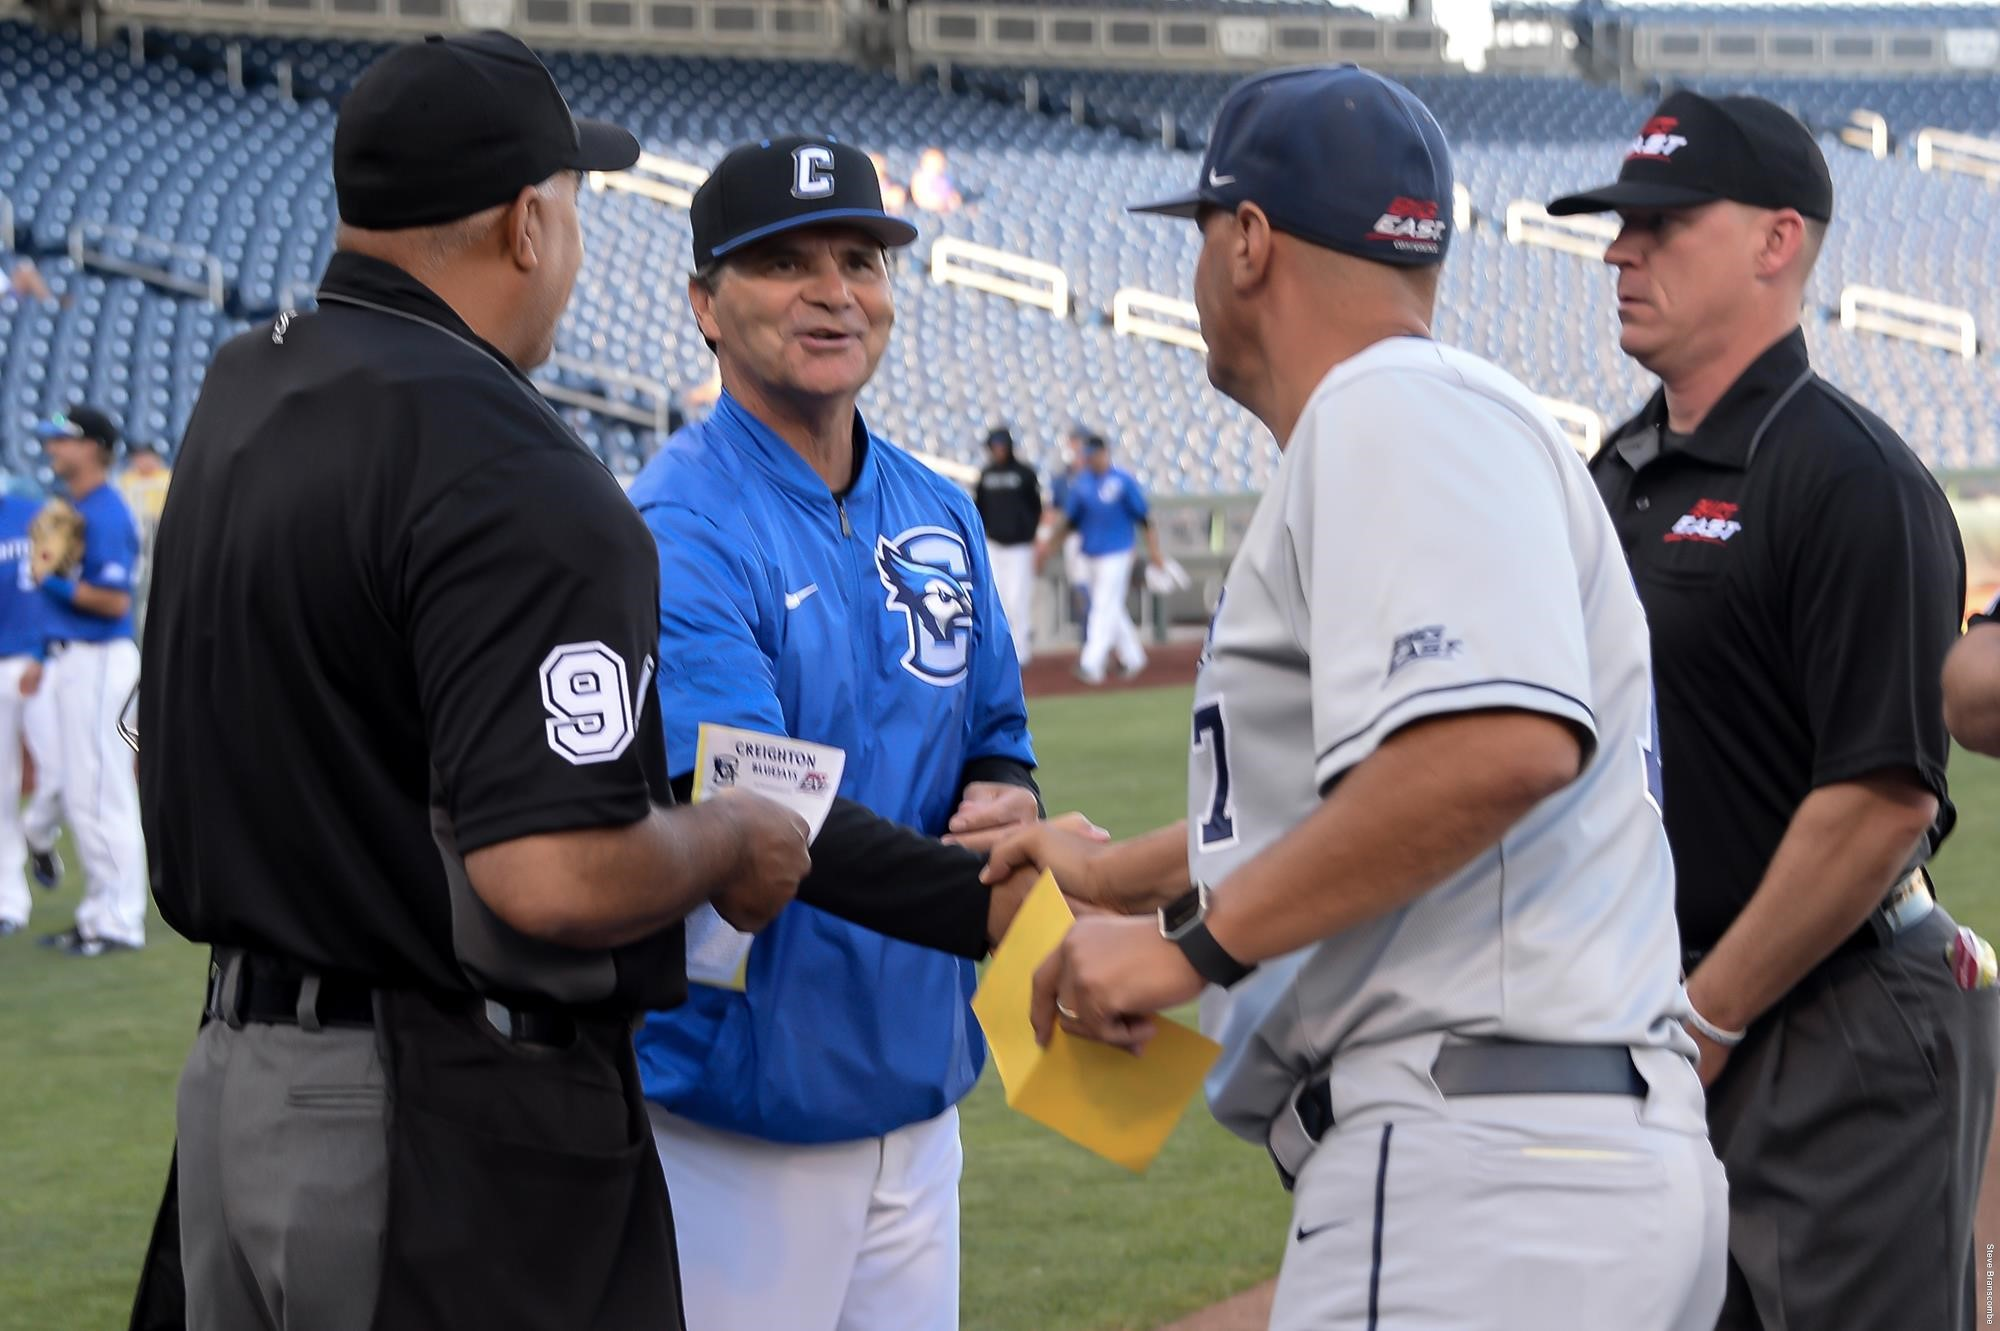 Creighton Baseball Schedule 2020 Creighton releases 2018 Schedule   College Baseball Daily